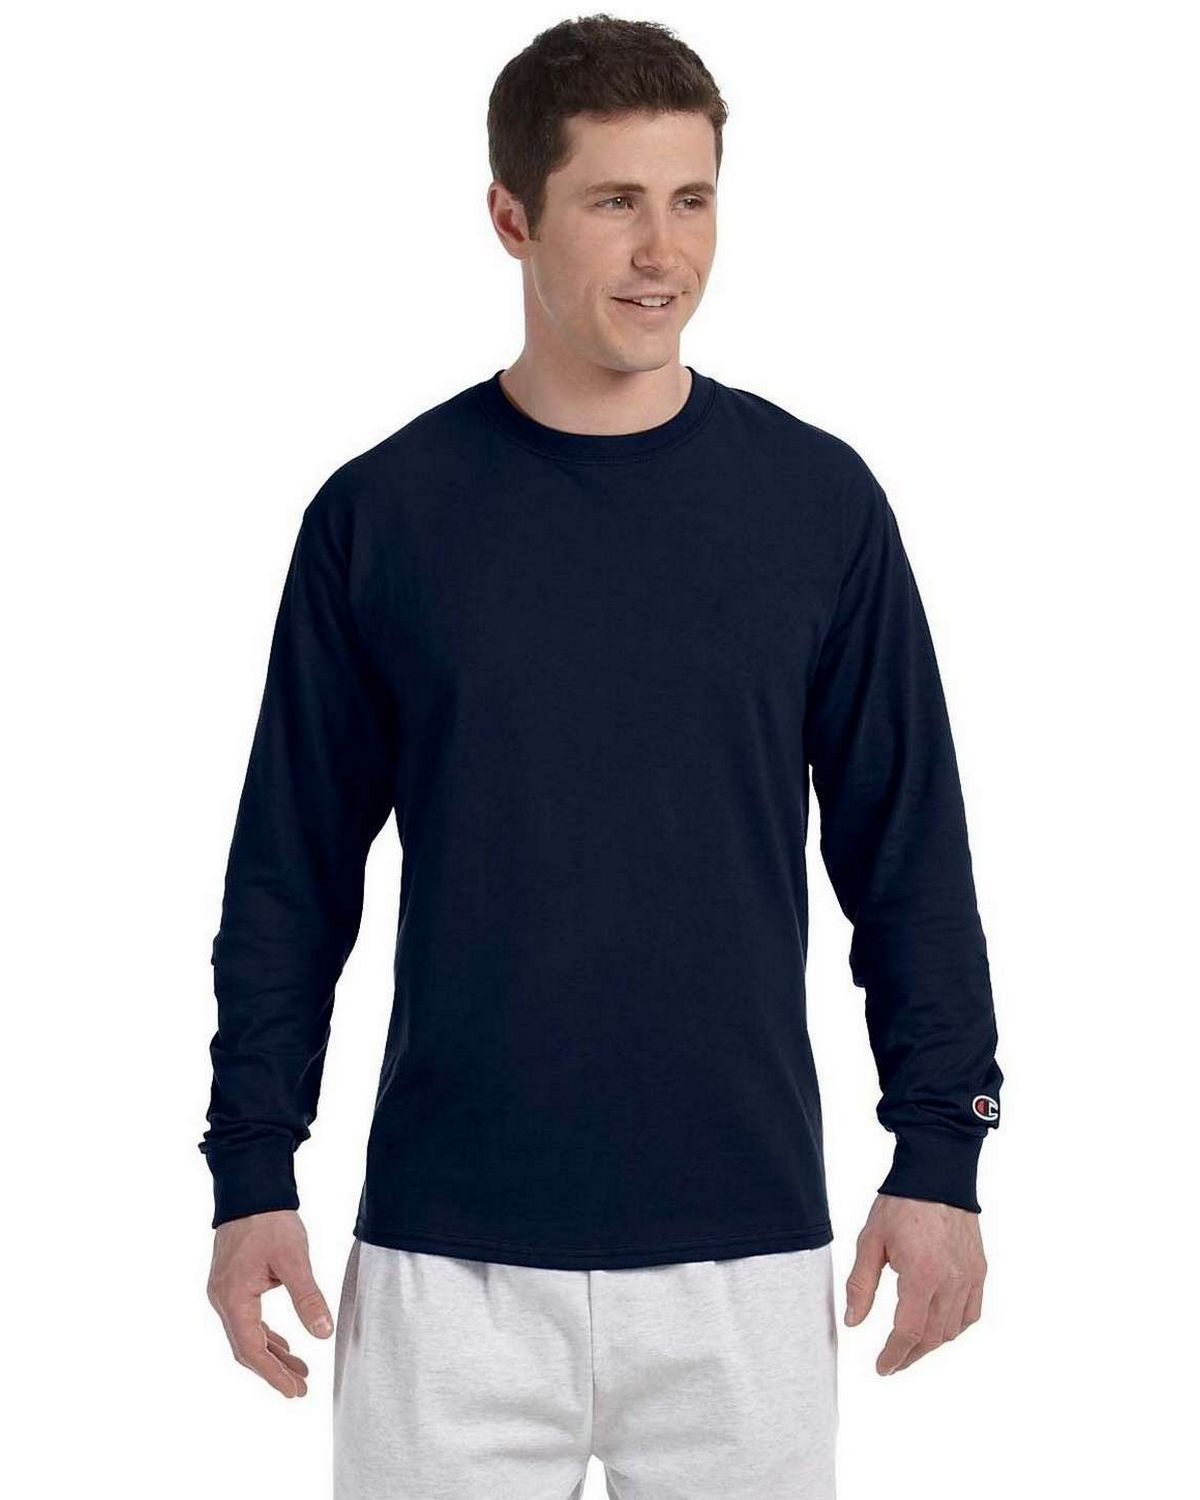 Champion CC8C Long-Sleeve T-Shirt - Navy - L CC8C